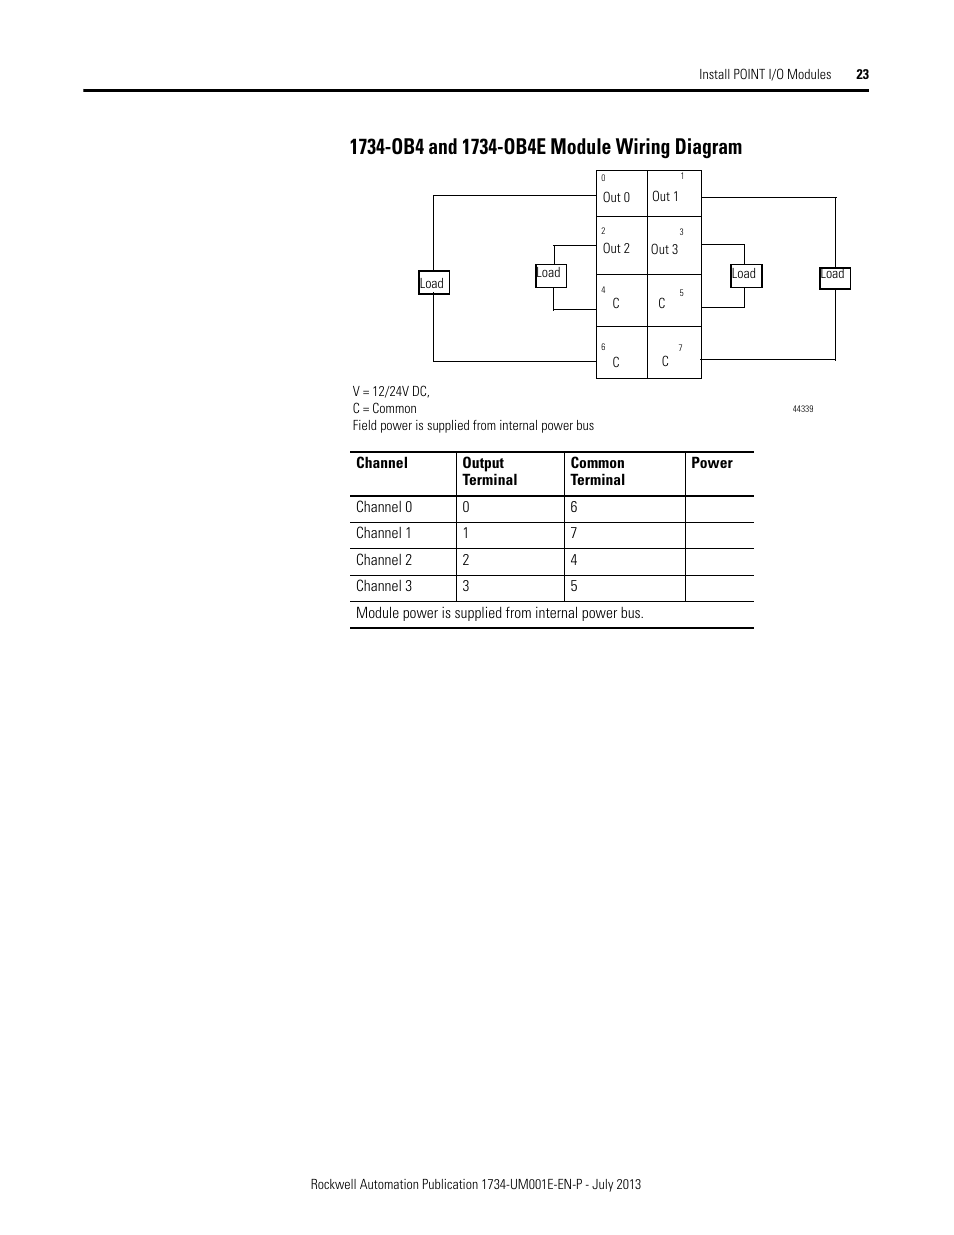 i o card wiring diagram i o module wiring diagram 1734-ob4 and 1734-ob4e module wiring diagram | rockwell ...